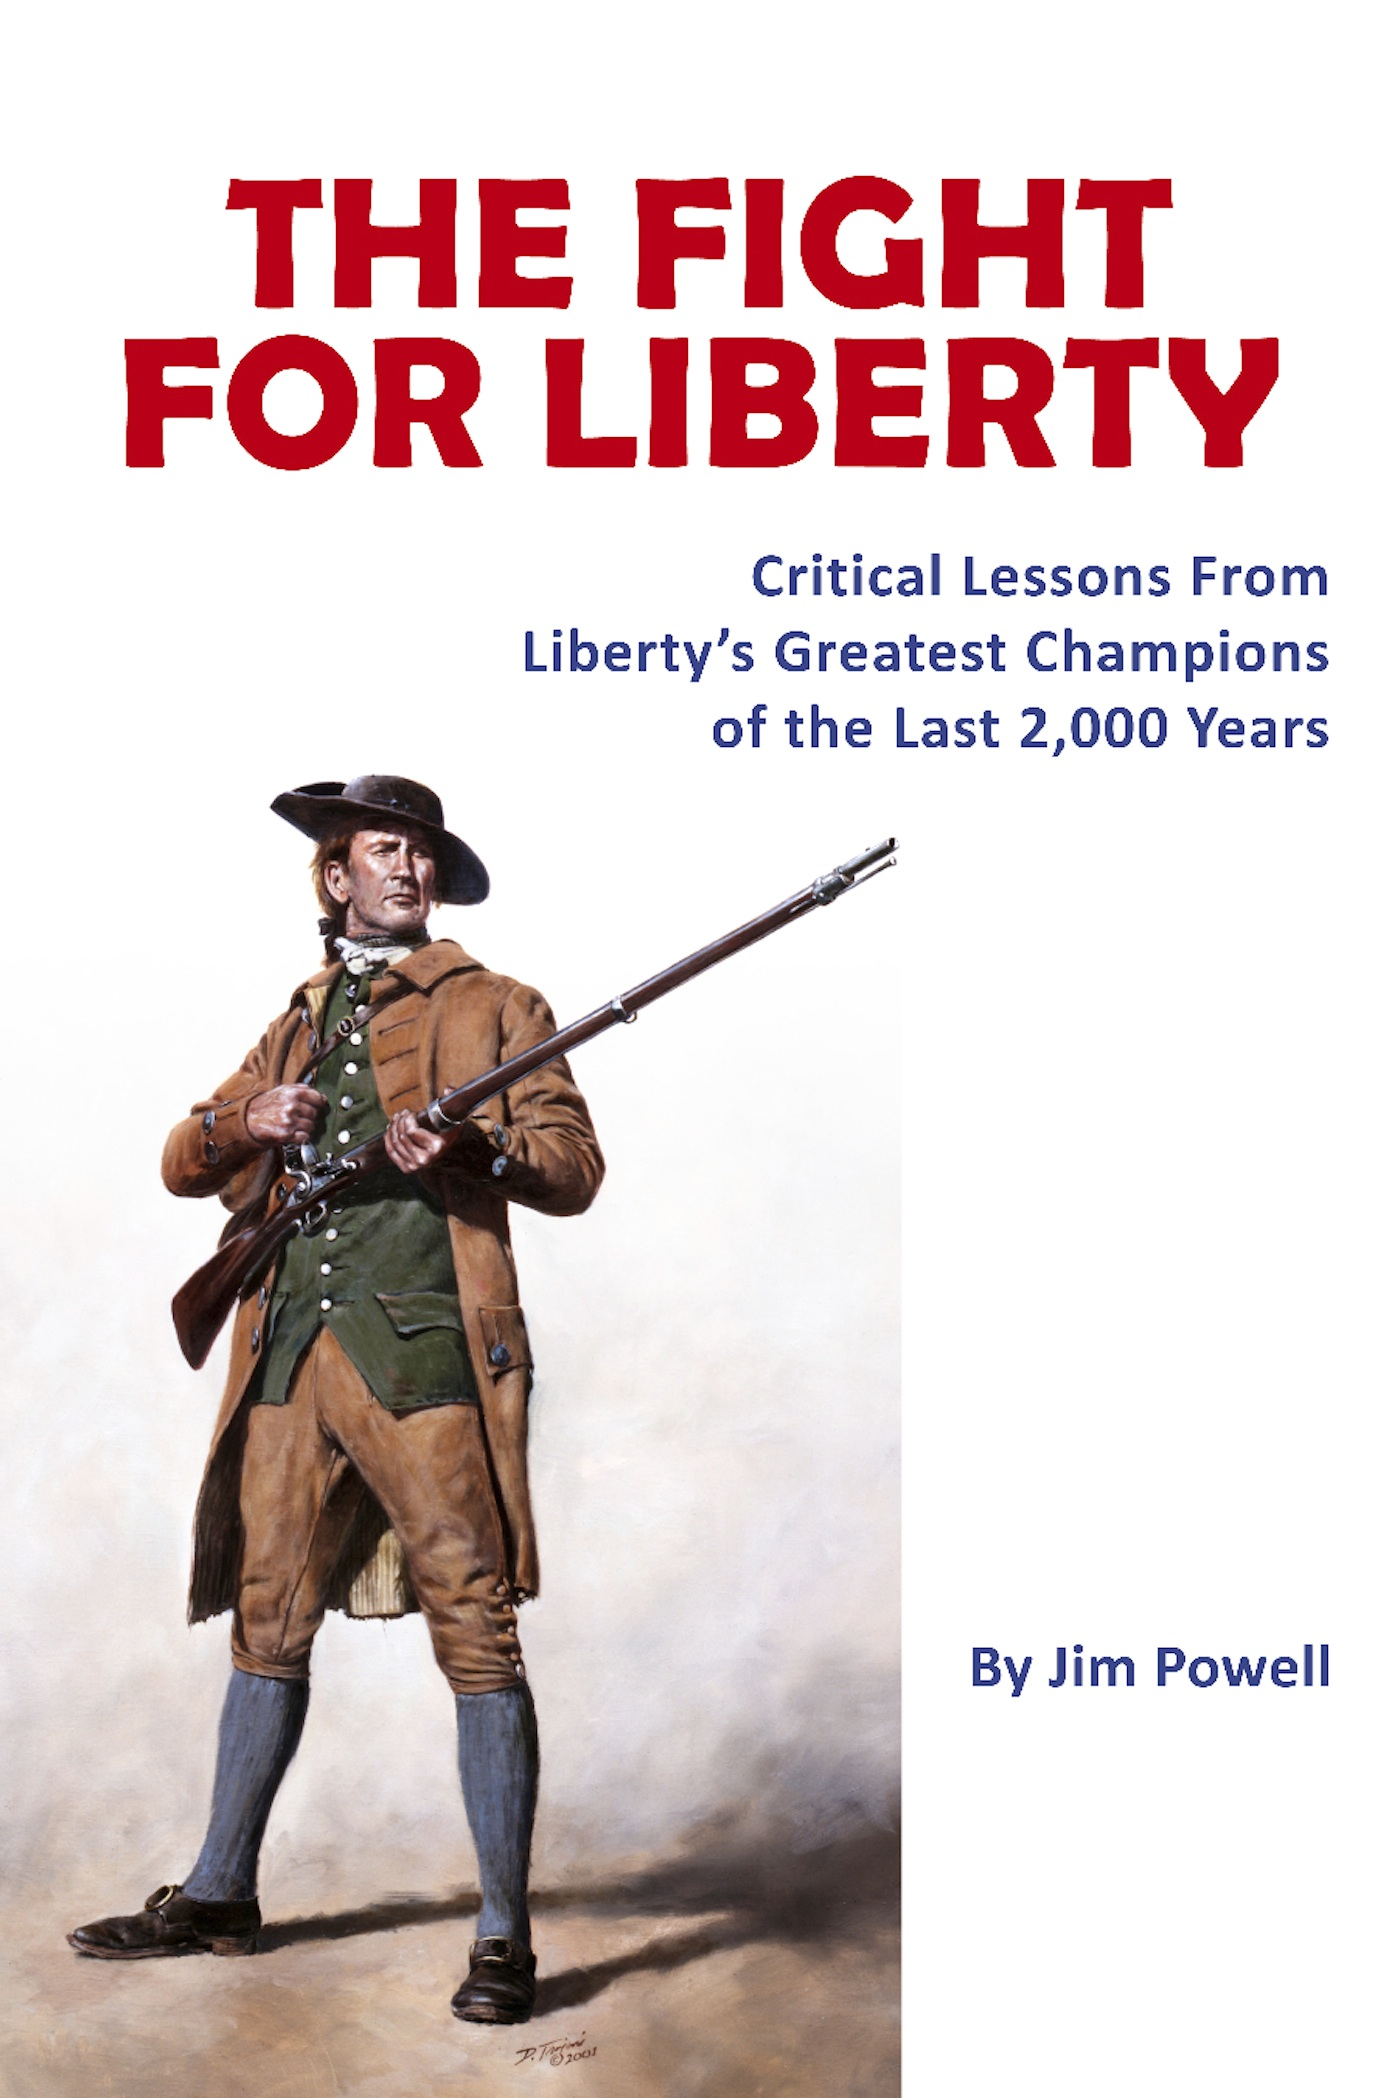 The Fight For Liberty